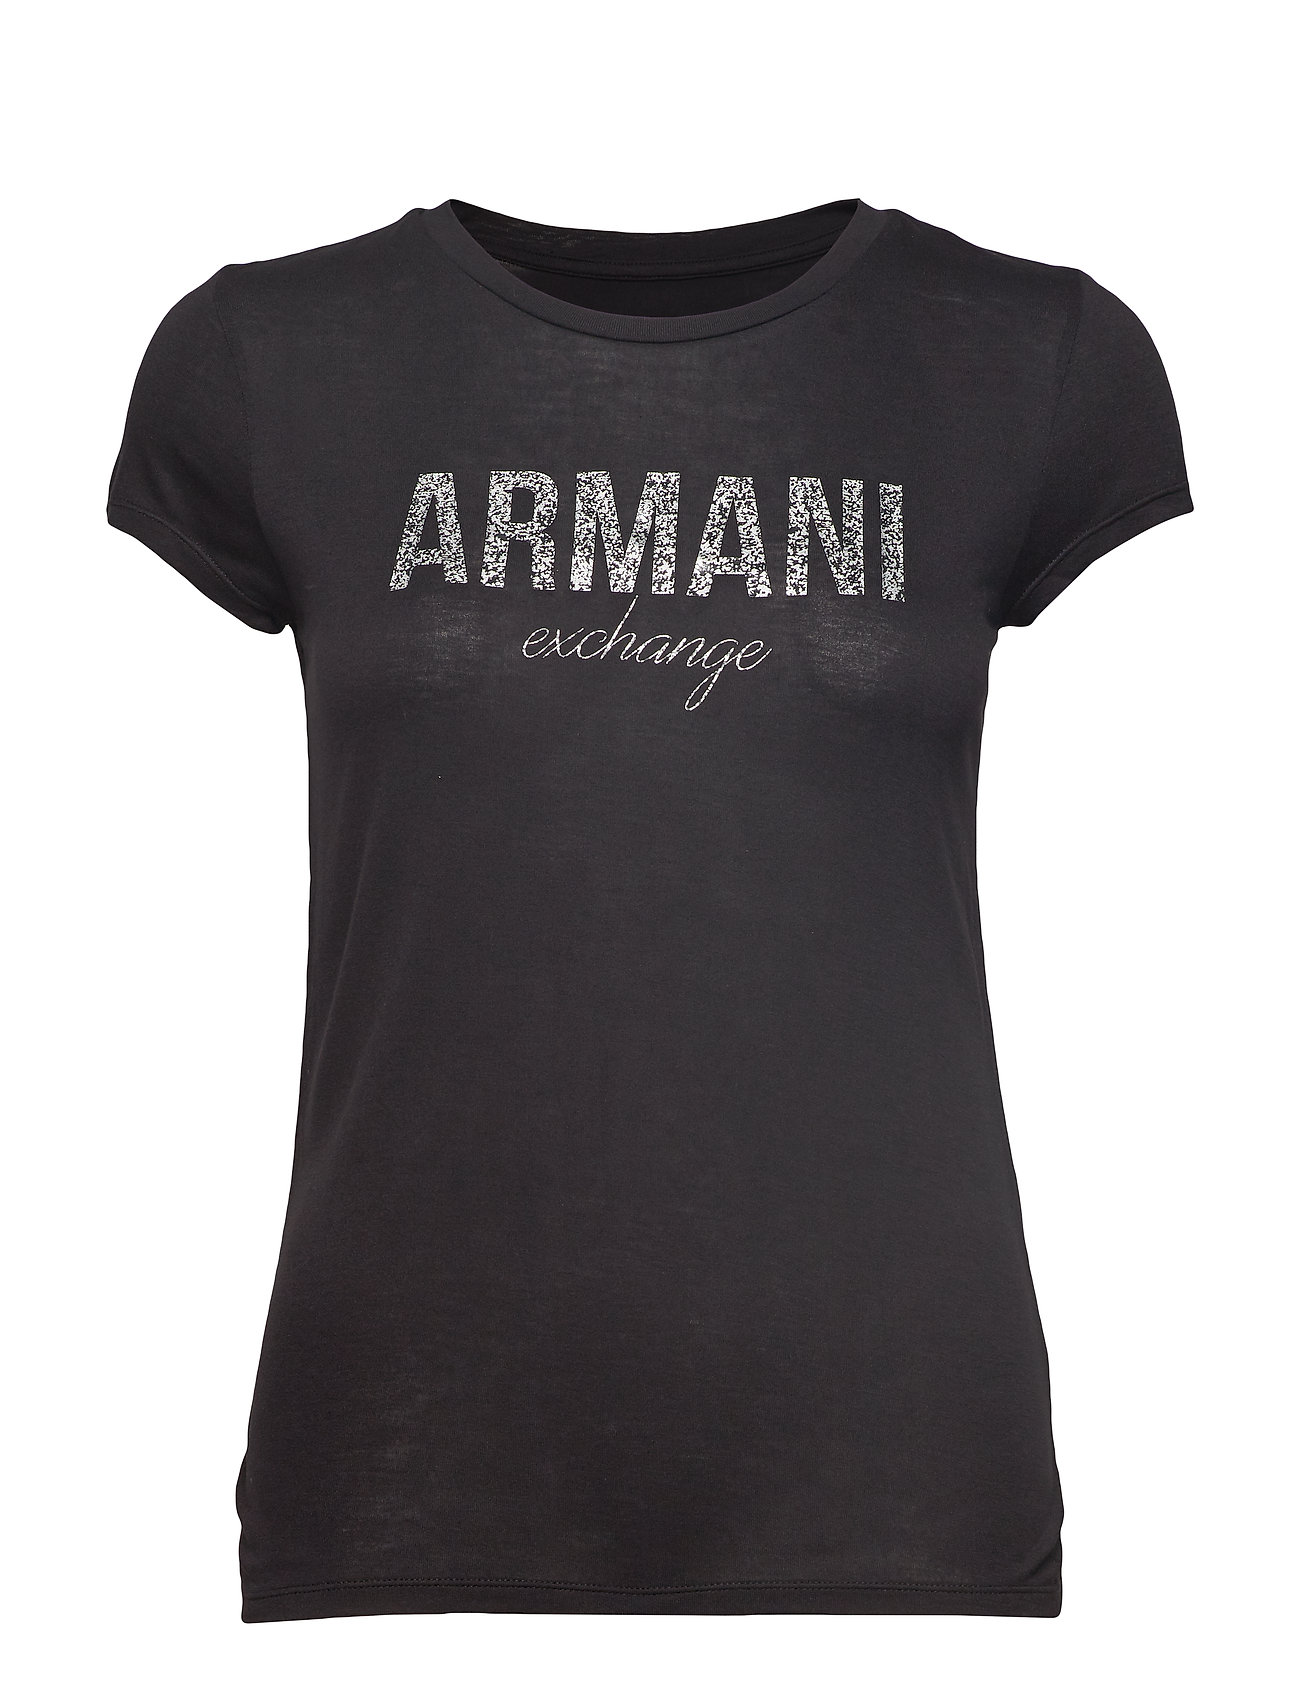 Exchange shirtblackArmani T Woman Woman Jersey D2IHE9